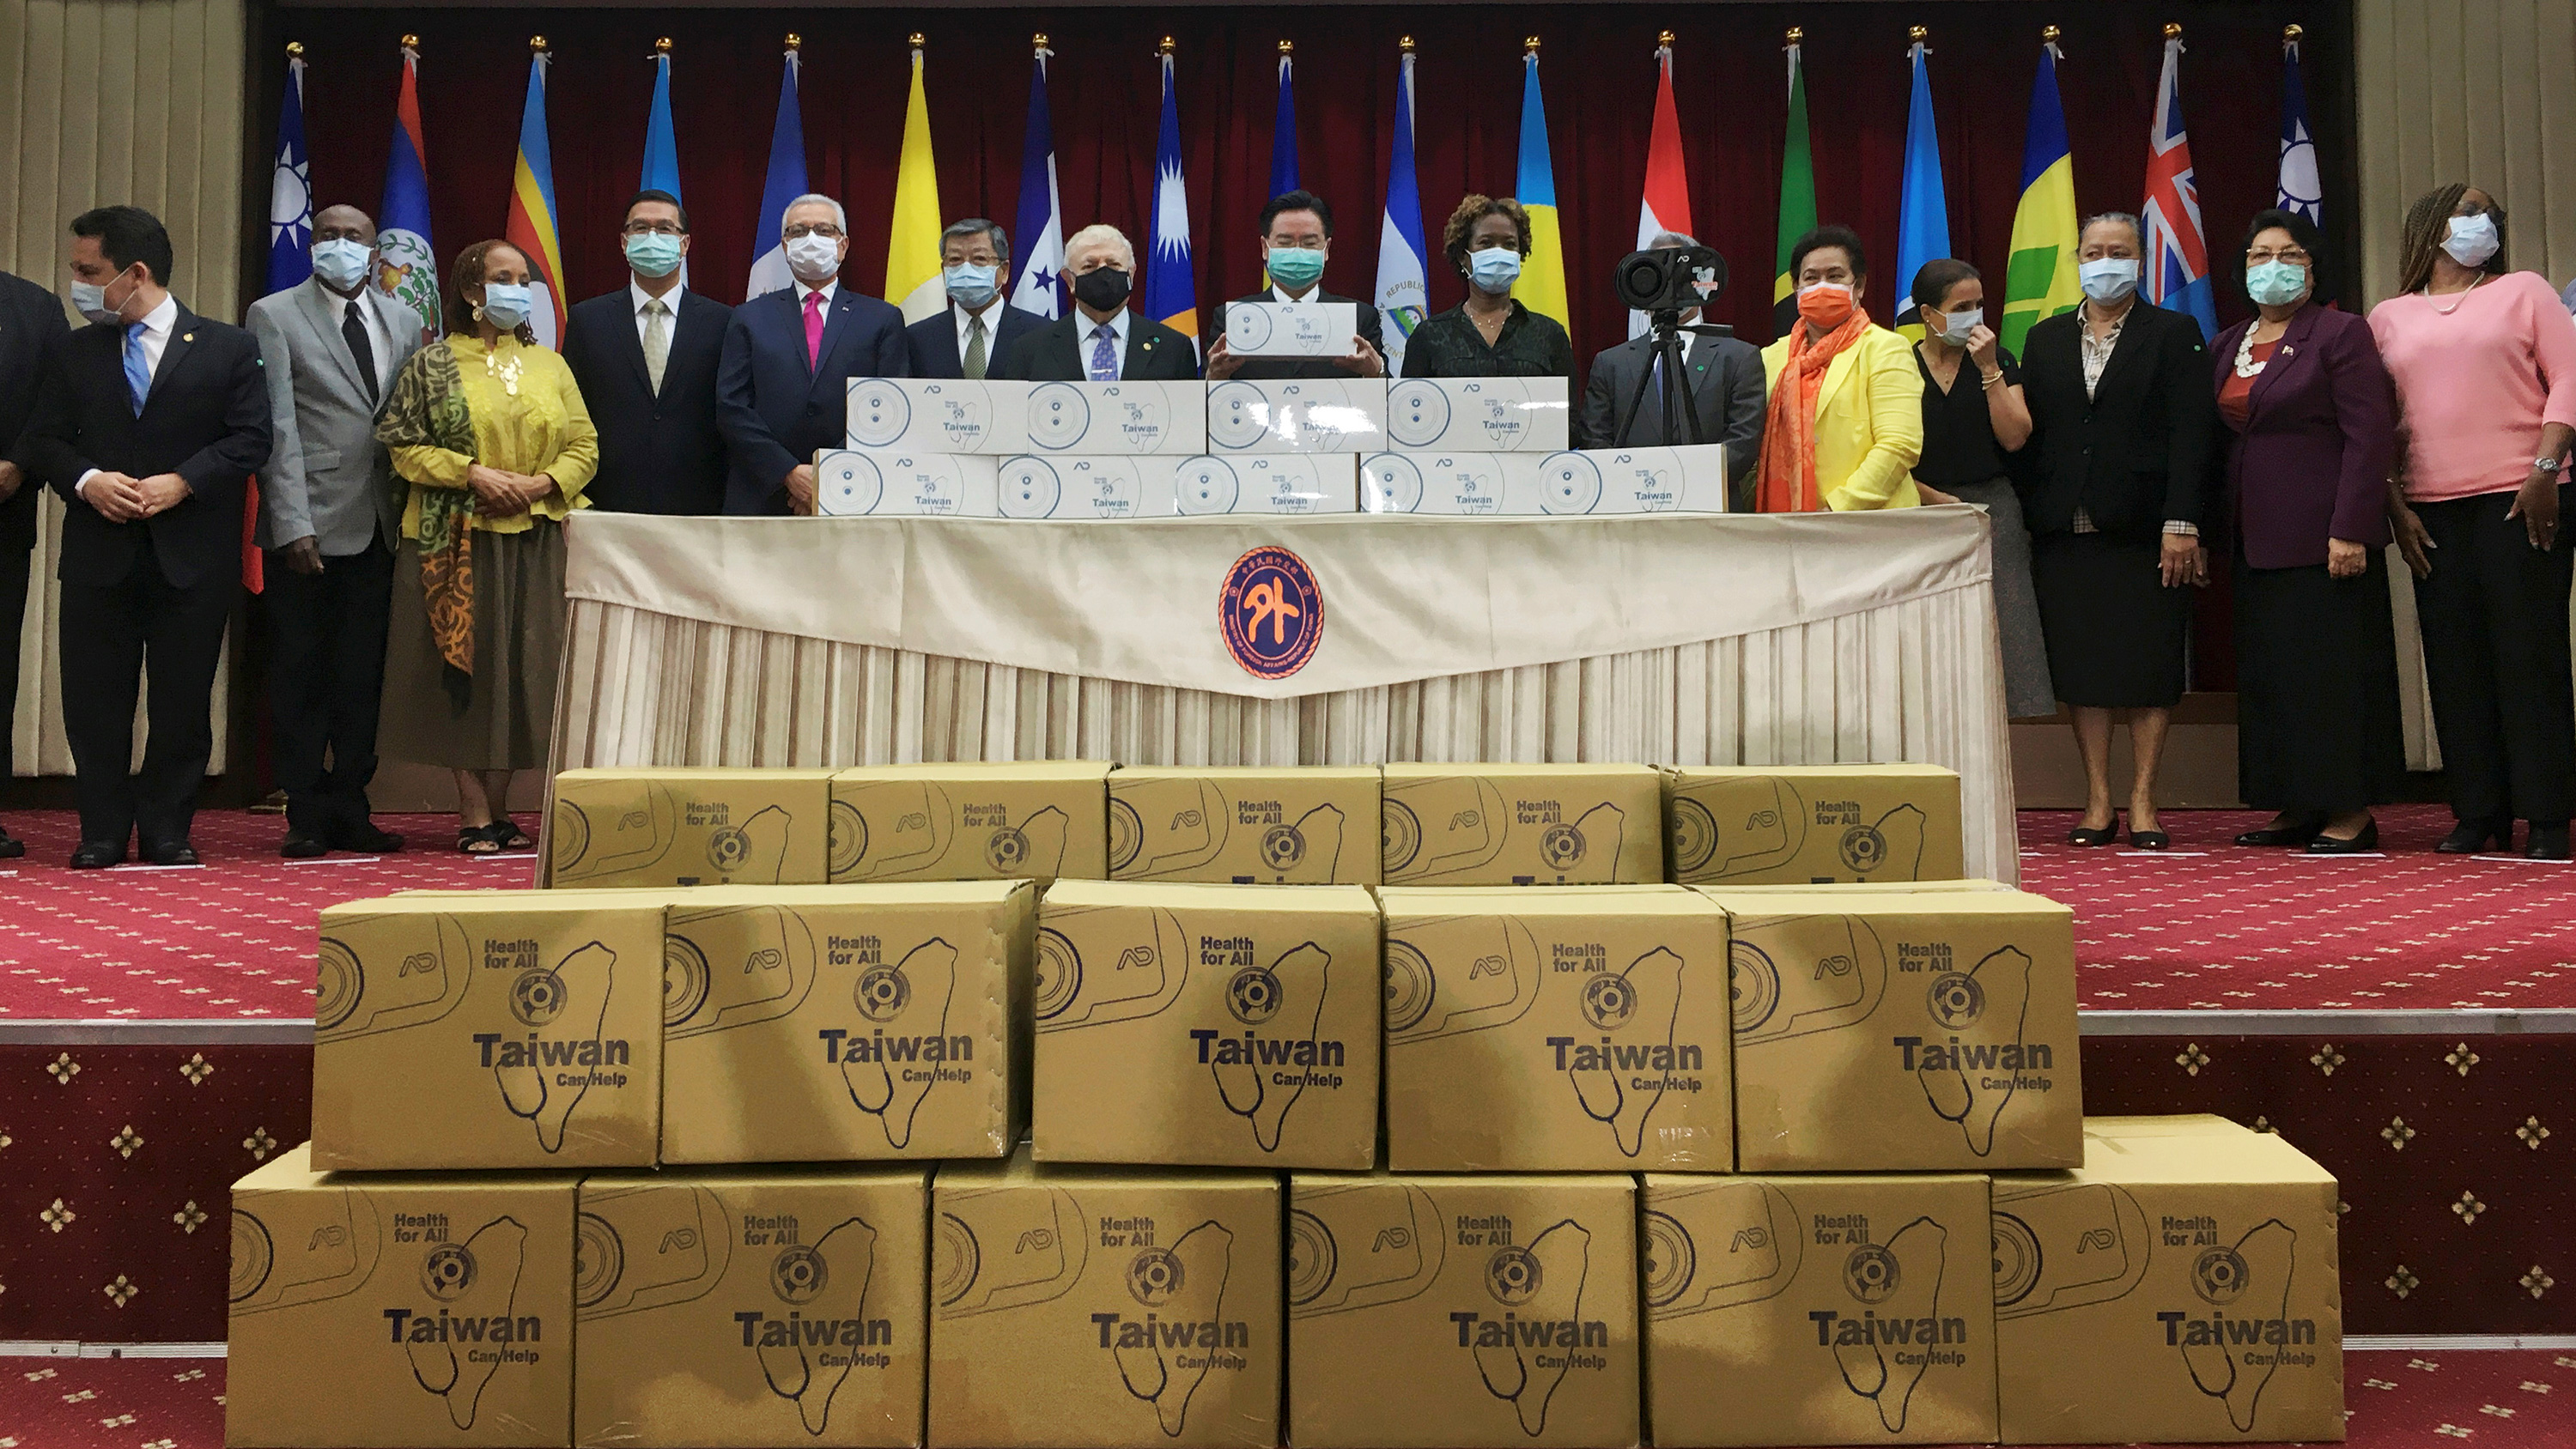 The photo shows a group of dignitaries amidst boxes of goods to be donated.